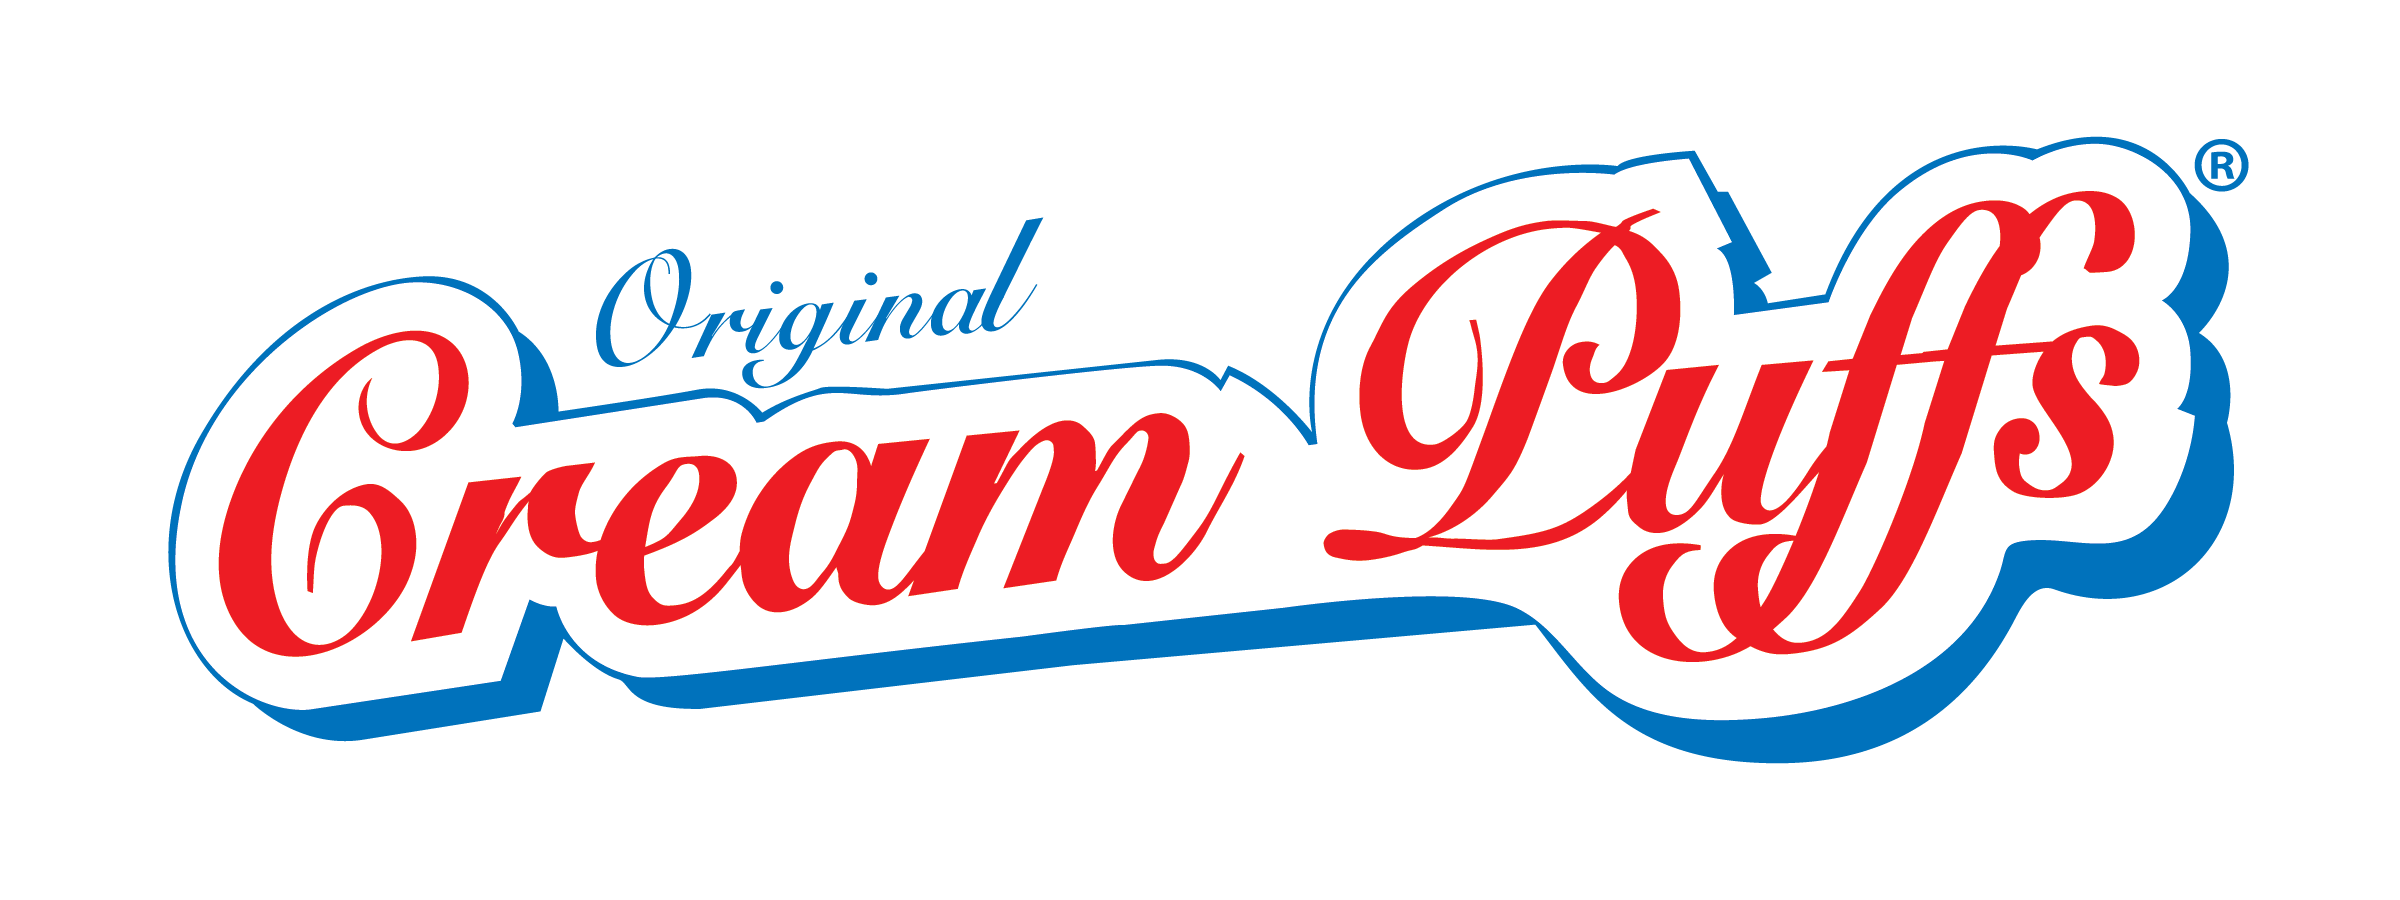 Original Cream Puffs Logo